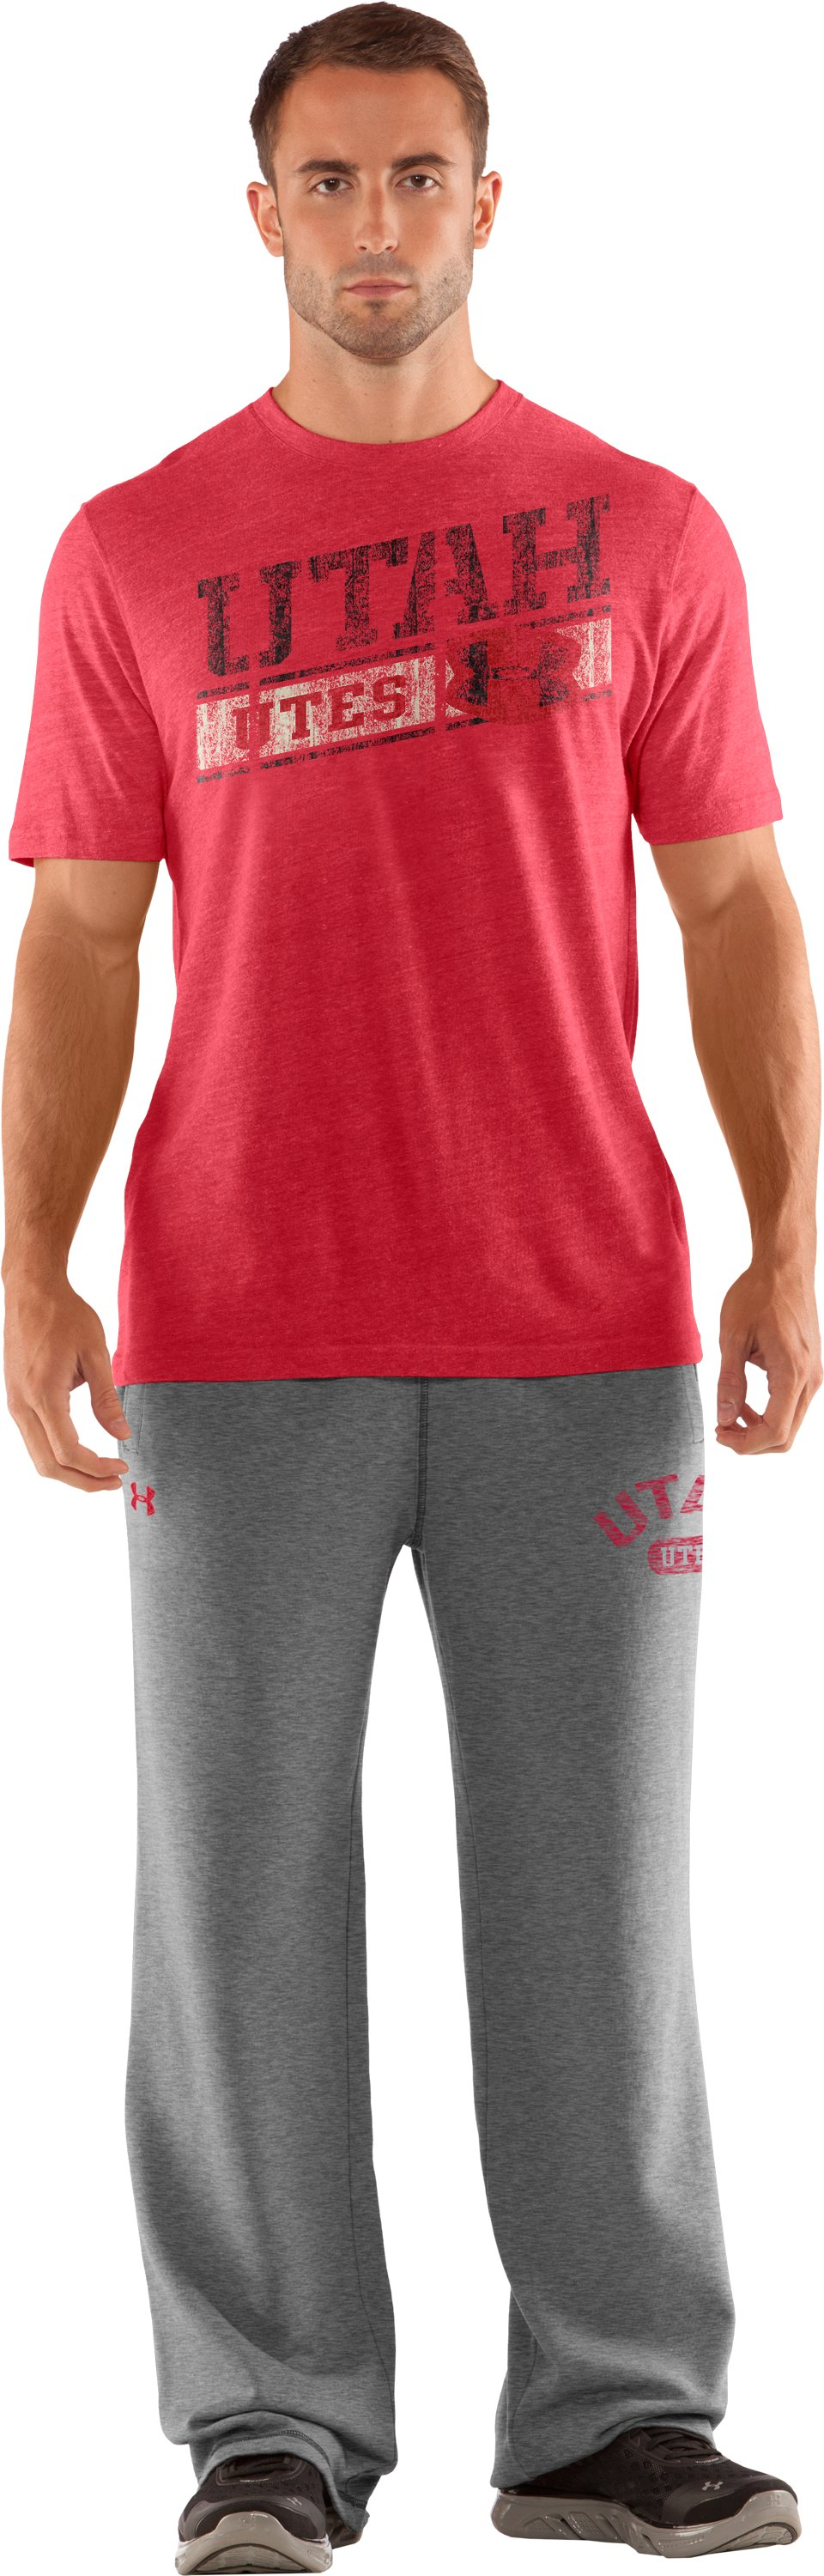 Men's Utah Under Armour® Legacy Pants, True Gray Heather, zoomed image